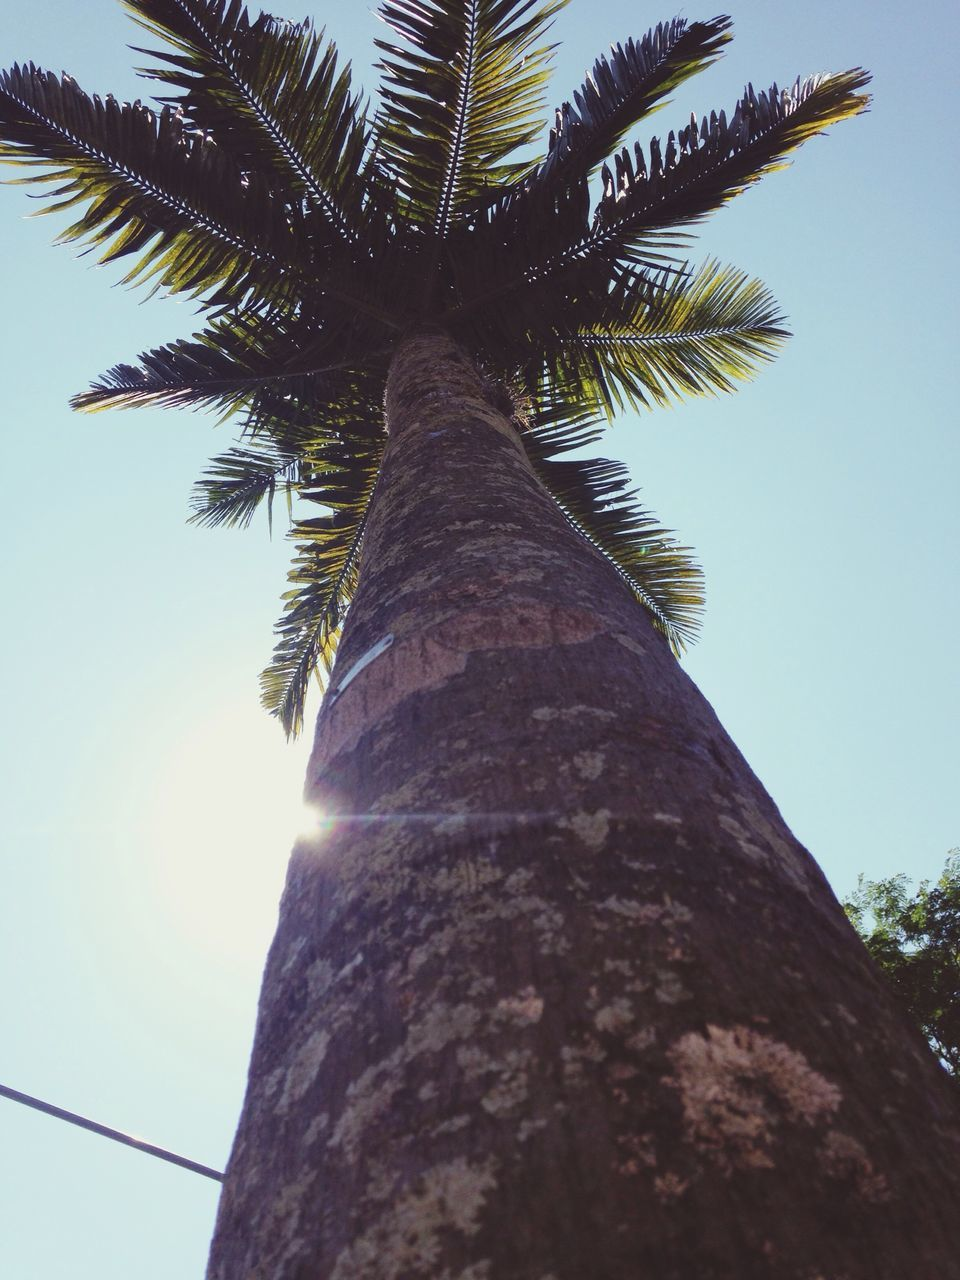 palm tree, tree trunk, tree, low angle view, tall - high, growth, nature, outdoors, day, sky, no people, beauty in nature, palm frond, clear sky, sunlight, scenics, tall, close-up